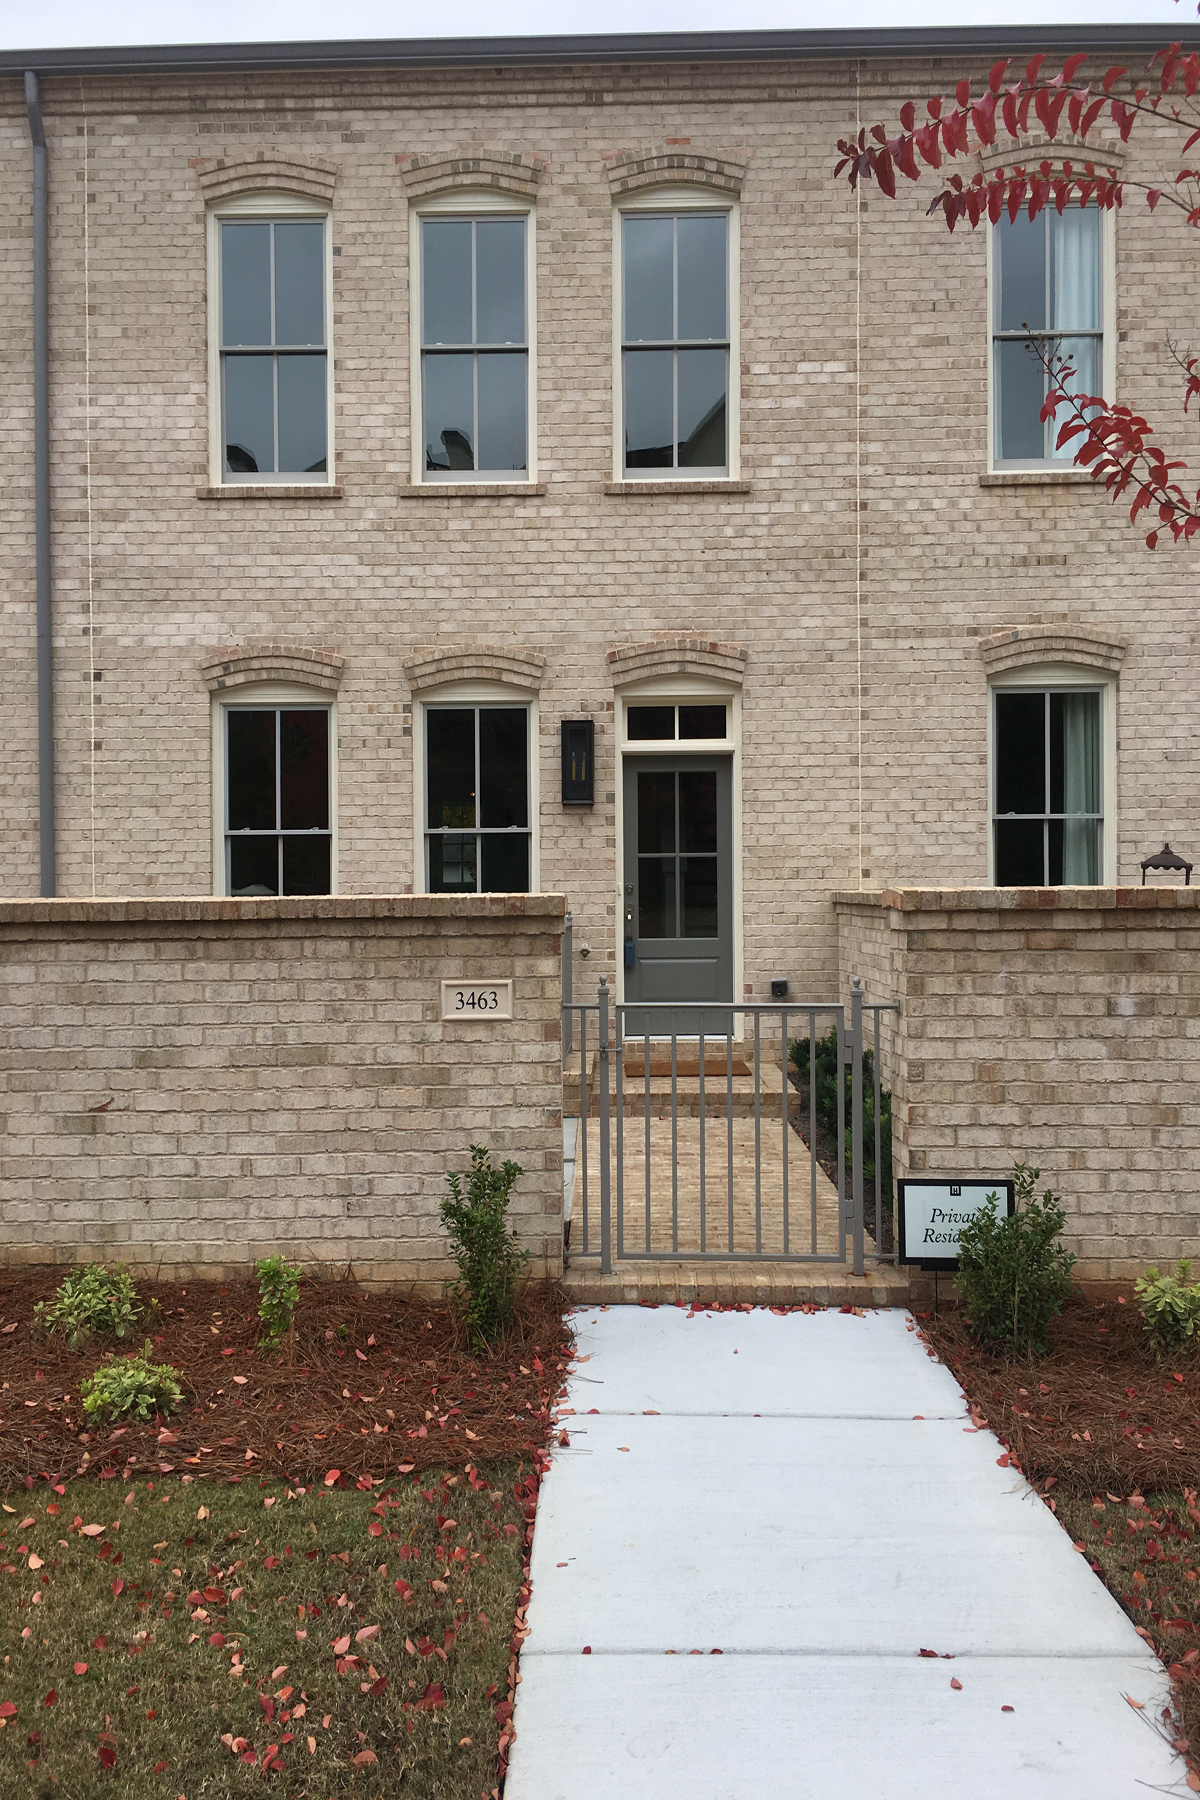 Townhouse for Rent at Brand New, Never Occupied Buckhead Townhome 3463 Landen Pine Court NE Atlanta, Georgia 30305 United States